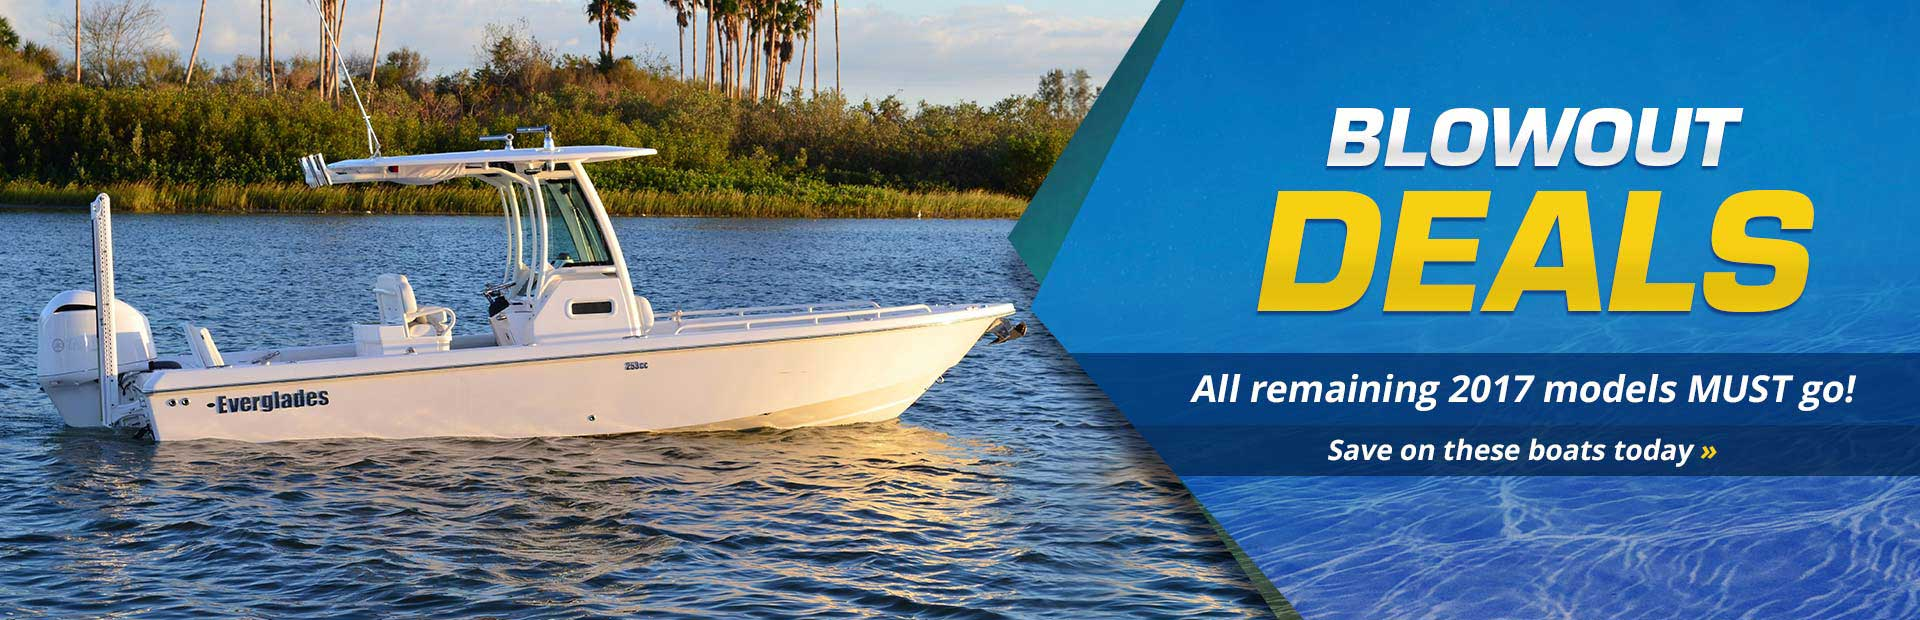 Blowout Deals on All Remaining 2017 Models: Save on these boats today!